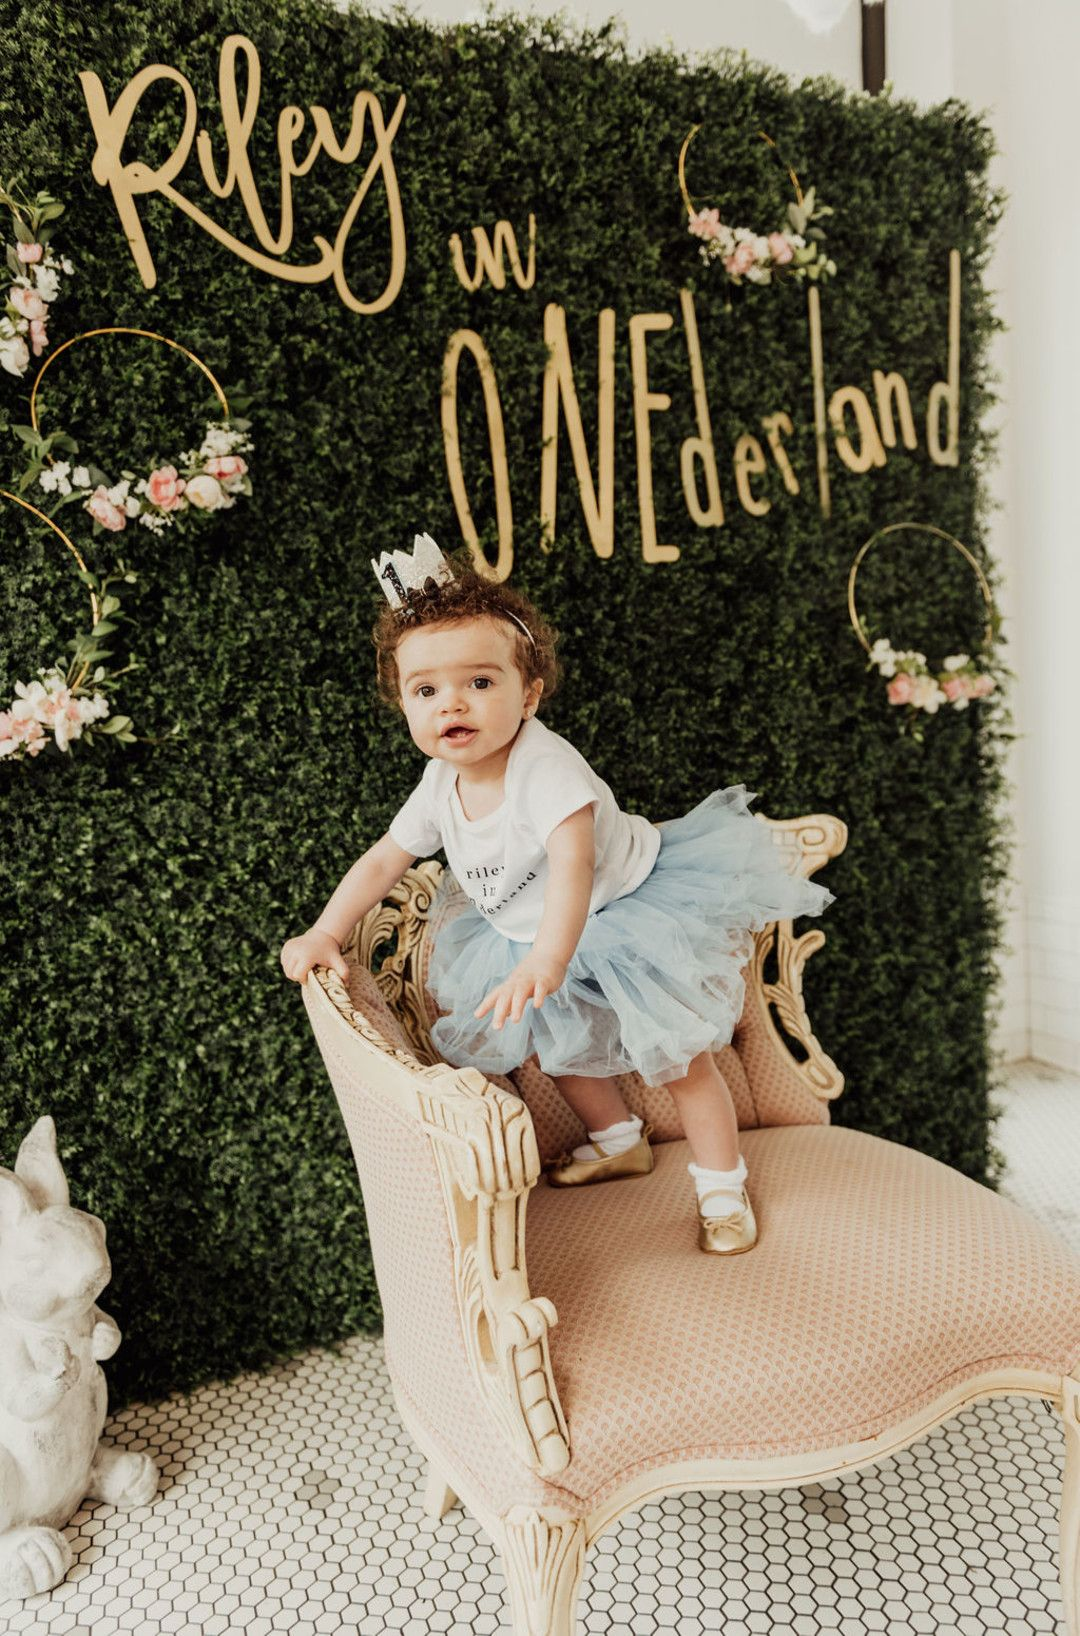 Delightful Alice in ONEderland Themed First Birthday Party | Parties365 | Party Ideas, Party Supplies, Party Decor